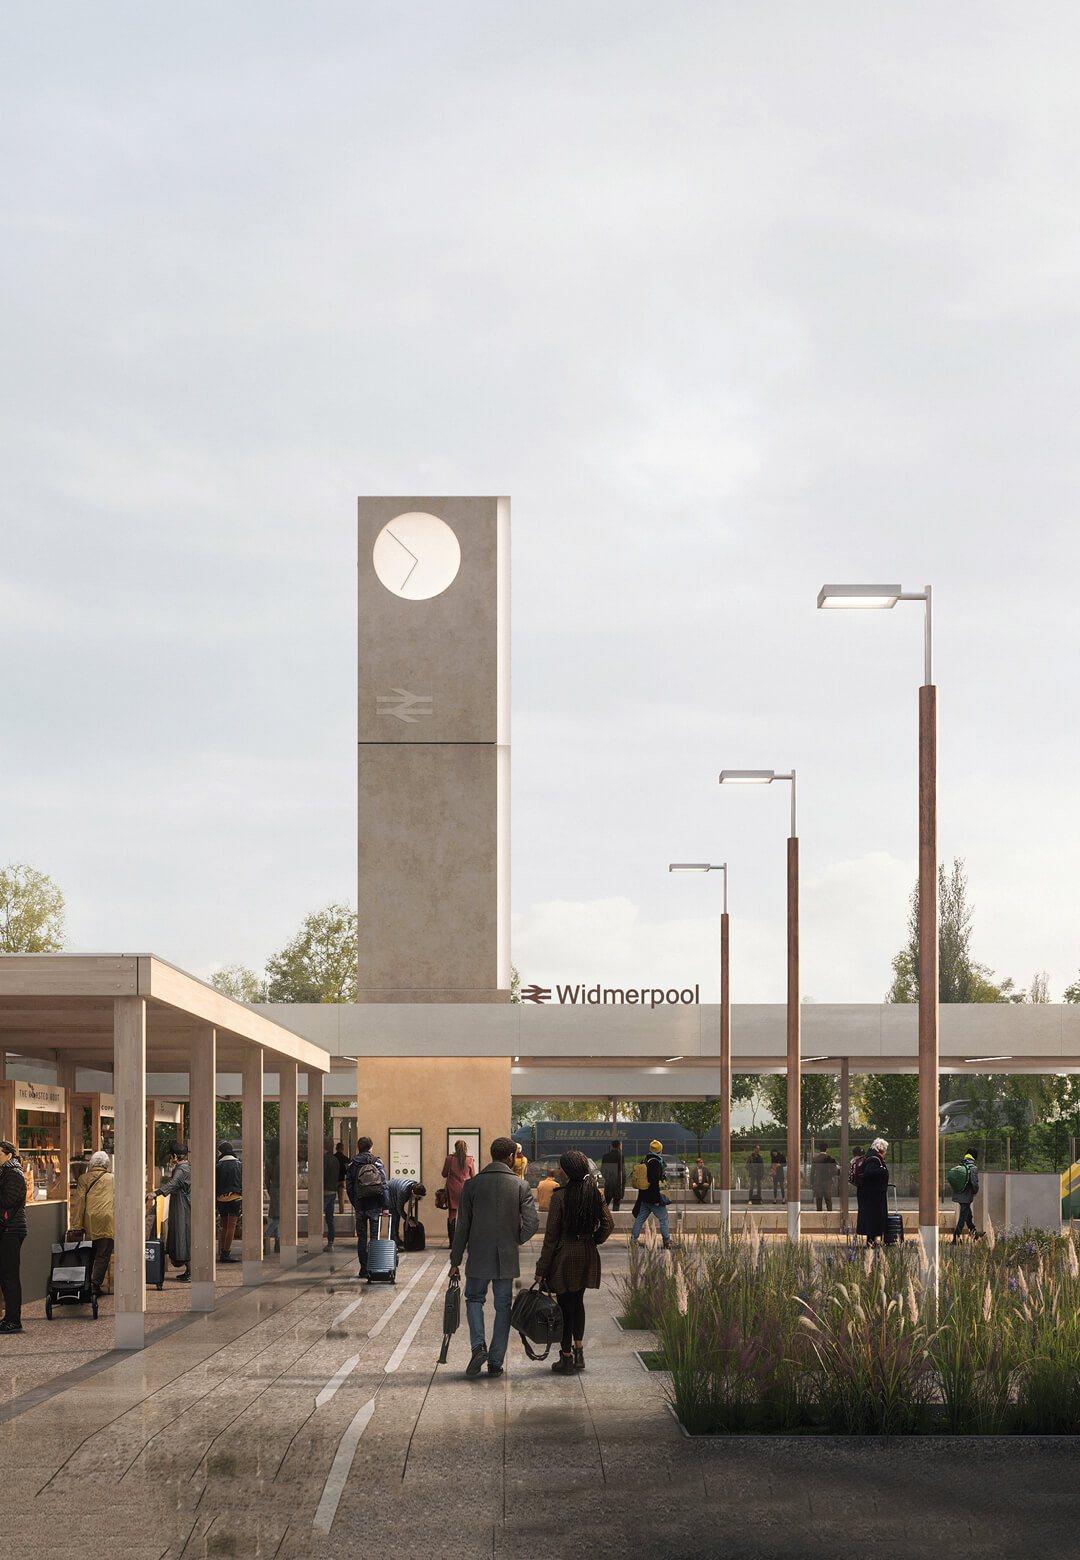 RIBA and Network Rail have announced 7N architects as the winner of an international design competition to reimagine the UK's railway stations | 7N Architects, RIBA, Network Rail, Railway Design Competition | STIRworld